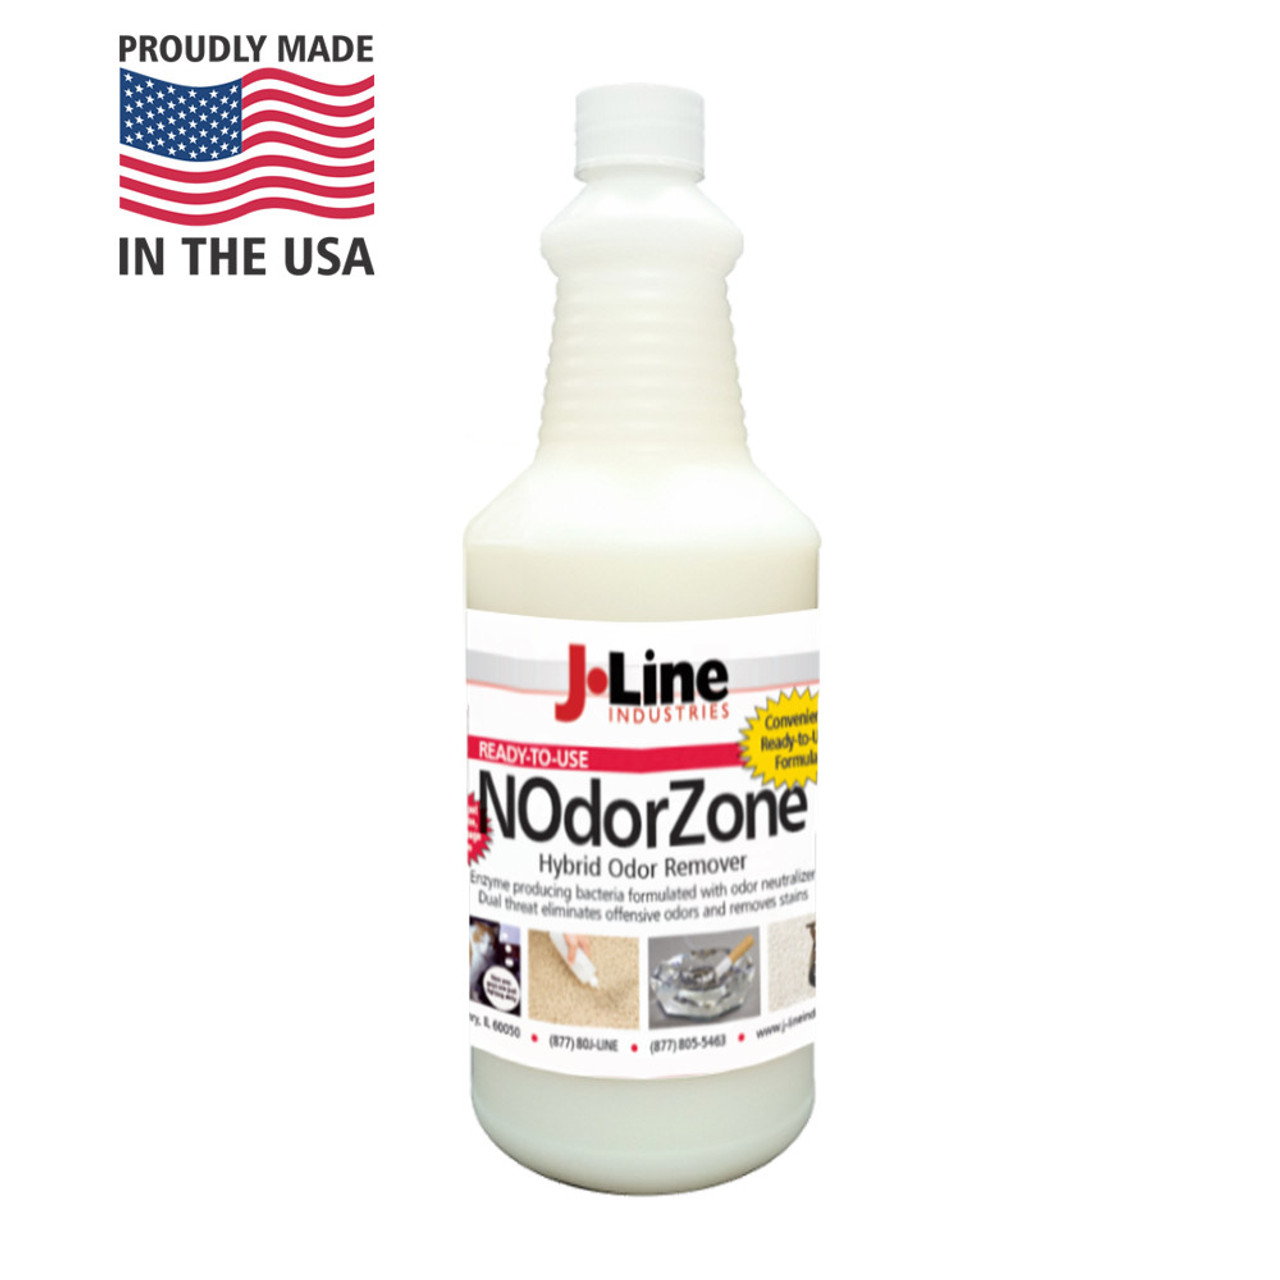 NOdorZone Odor Remover doesn't cover up odors - It eliminates them!